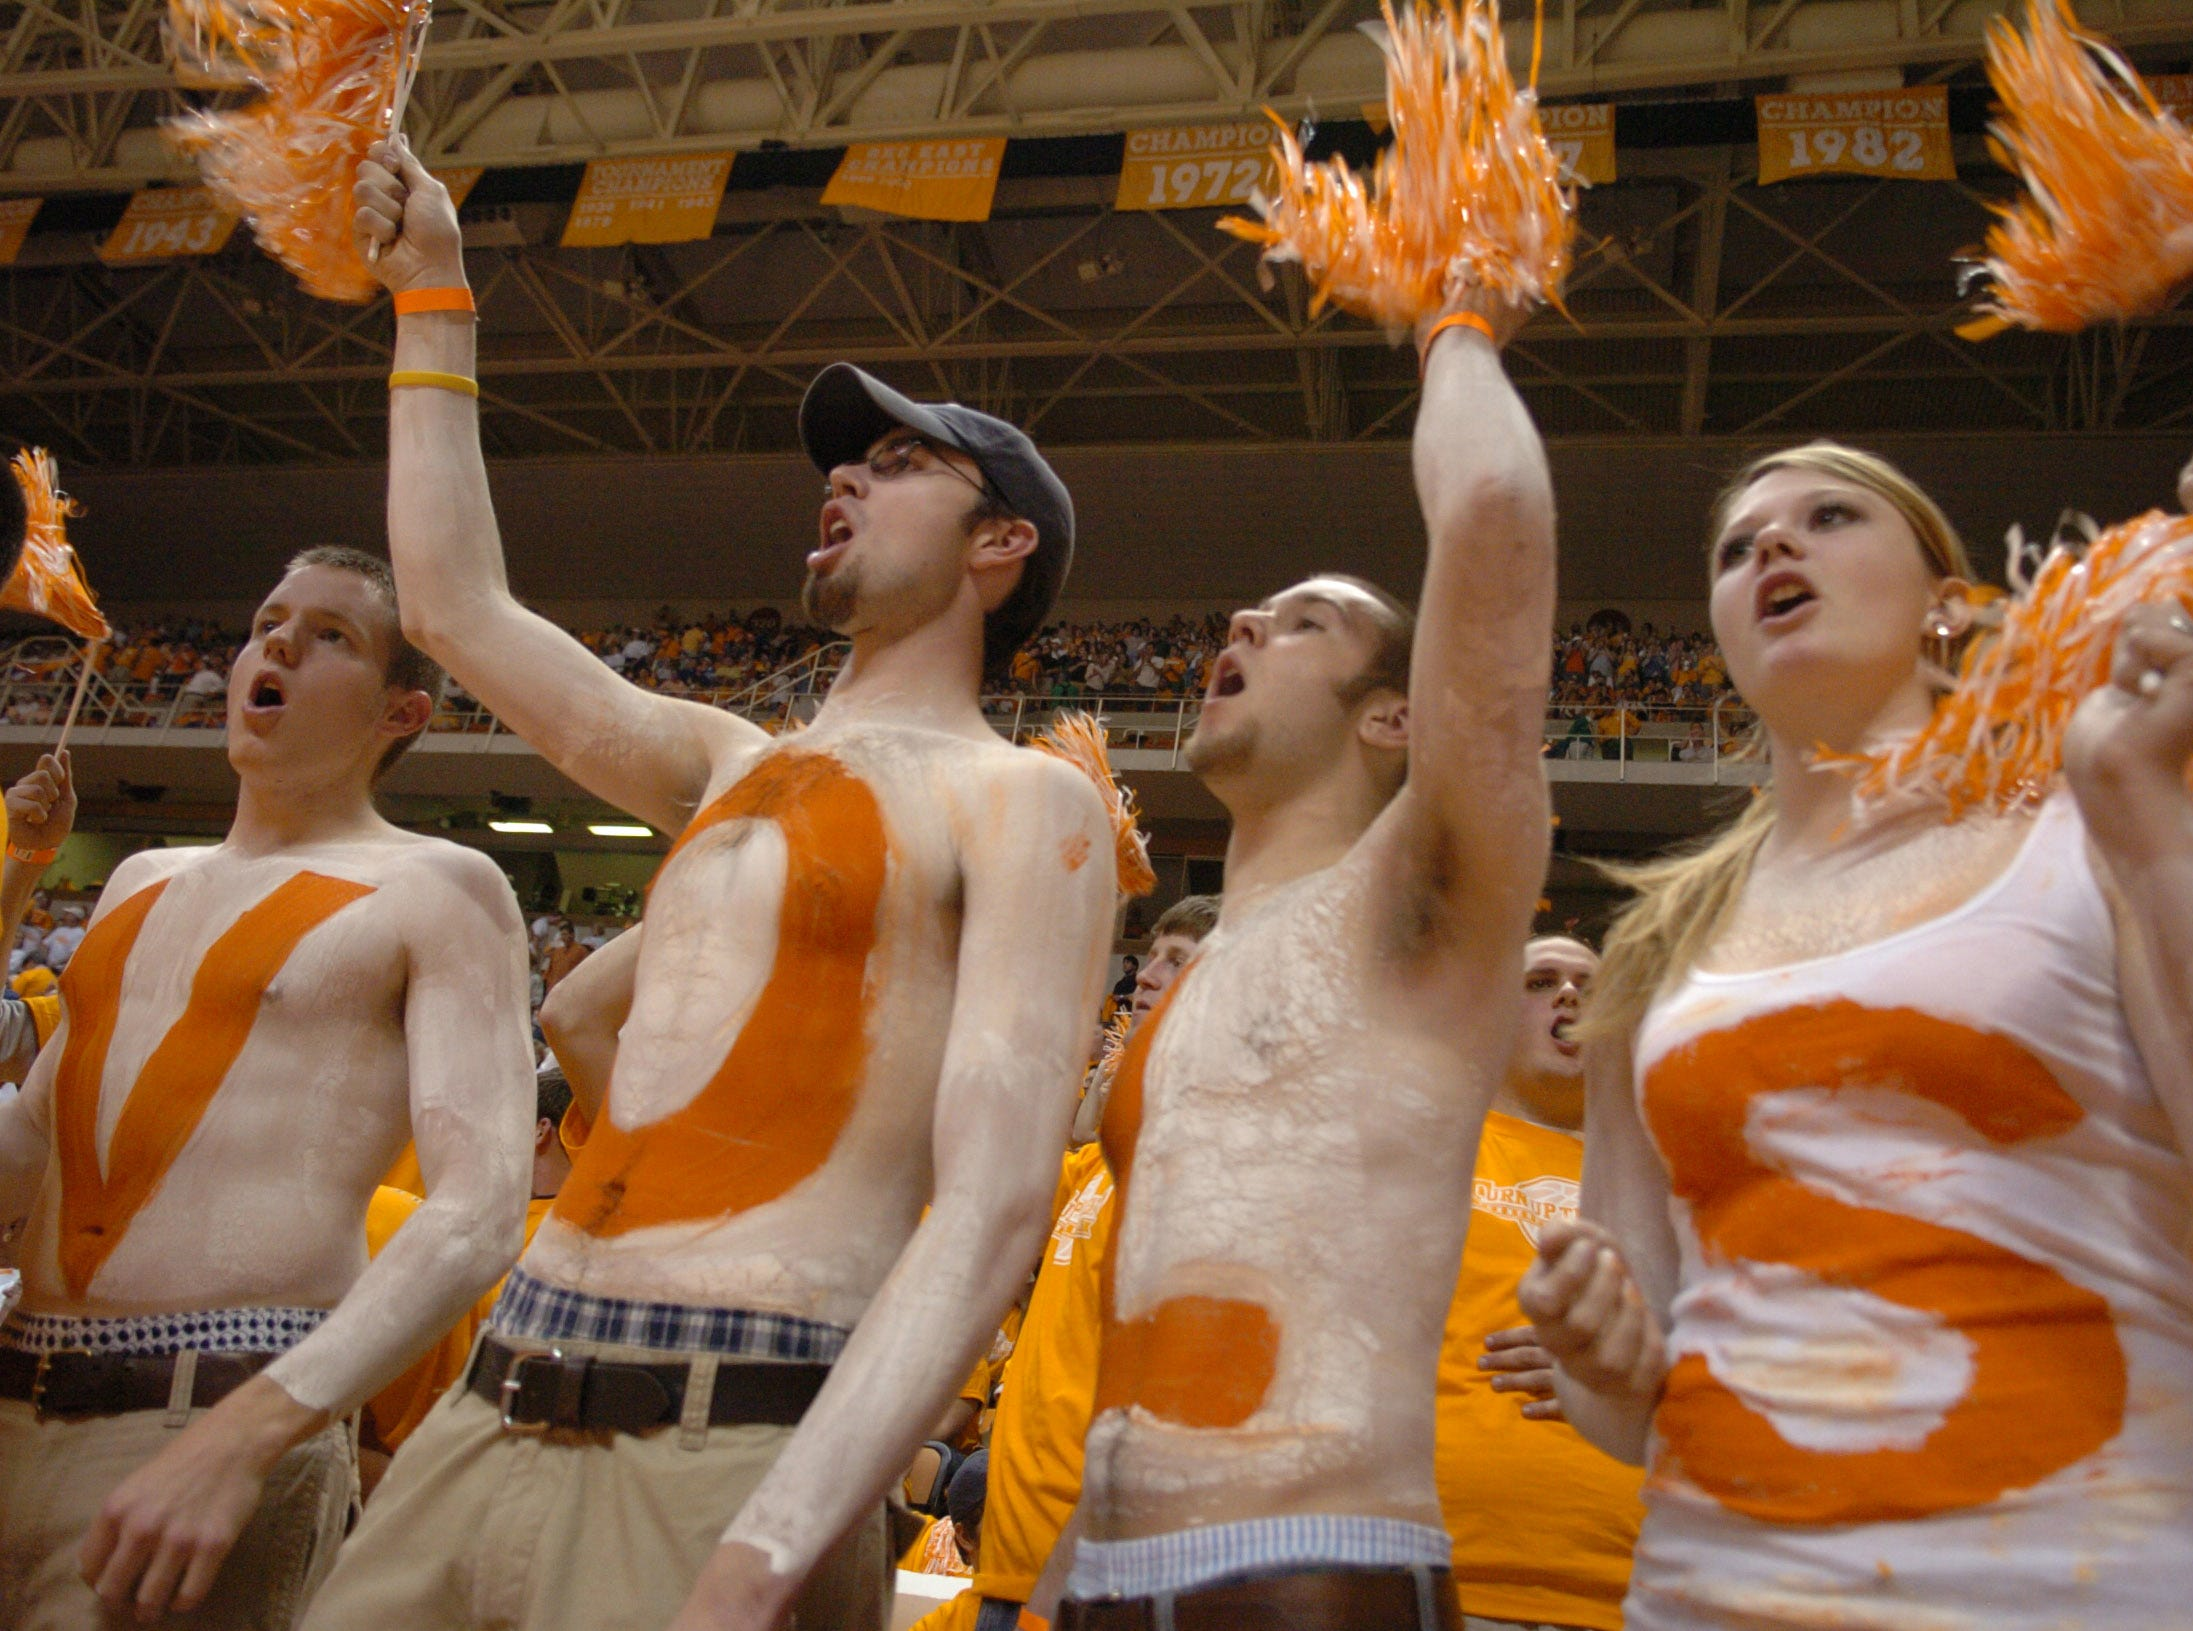 UT students, from left, Daniel Edmunds, 21, Blake Rust, 20, Jonathan Harris, 21, Mimi Slagle, 18, cheer on the Vols as they play Kentucky at Thompson Boling Arena in March 2006.